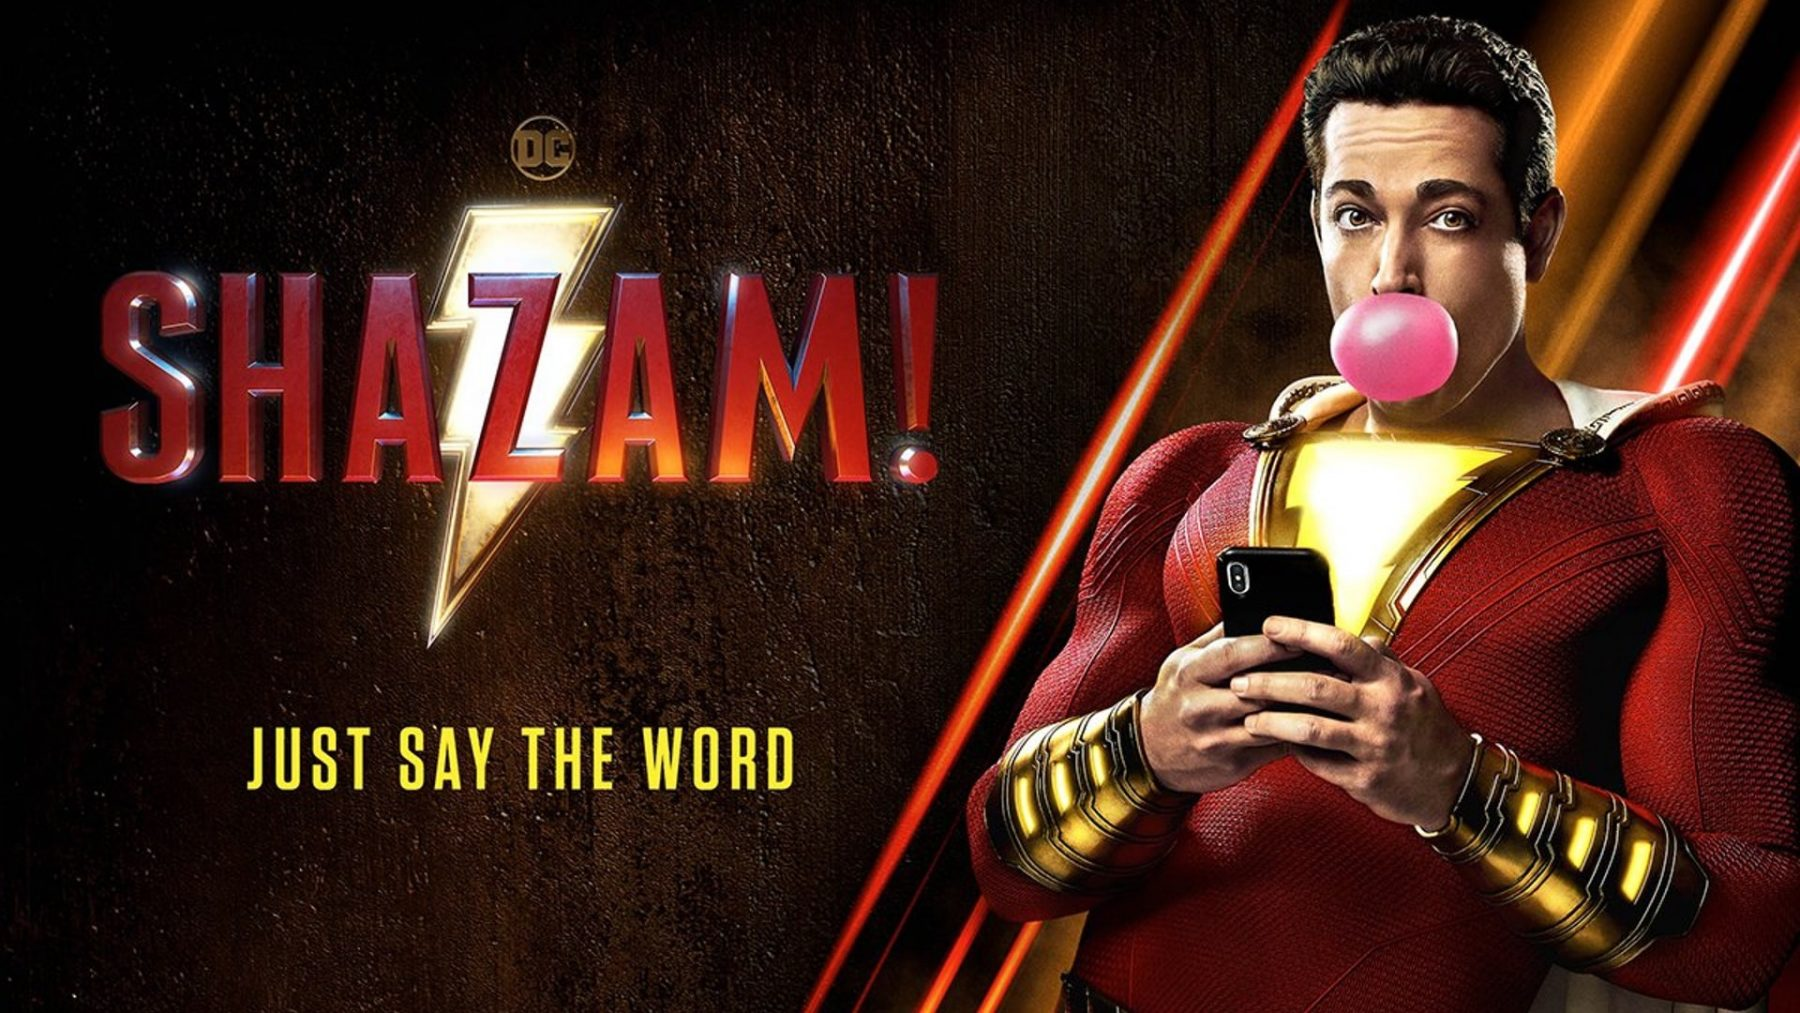 Shazam HD Wallpapers 7wallpapersnet 1800x1013